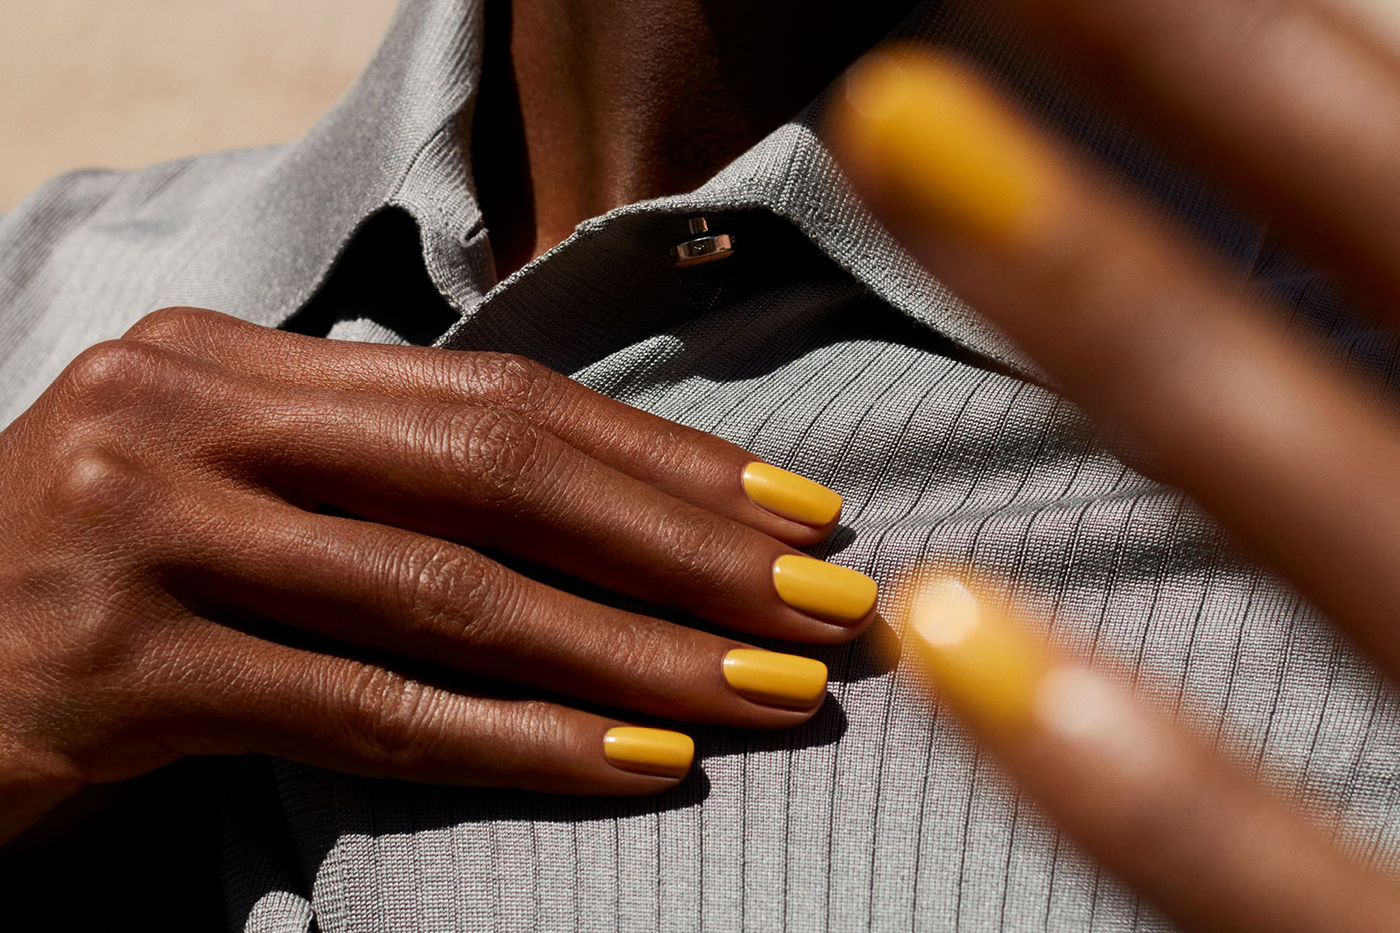 Hermes Beauty launches hand care range